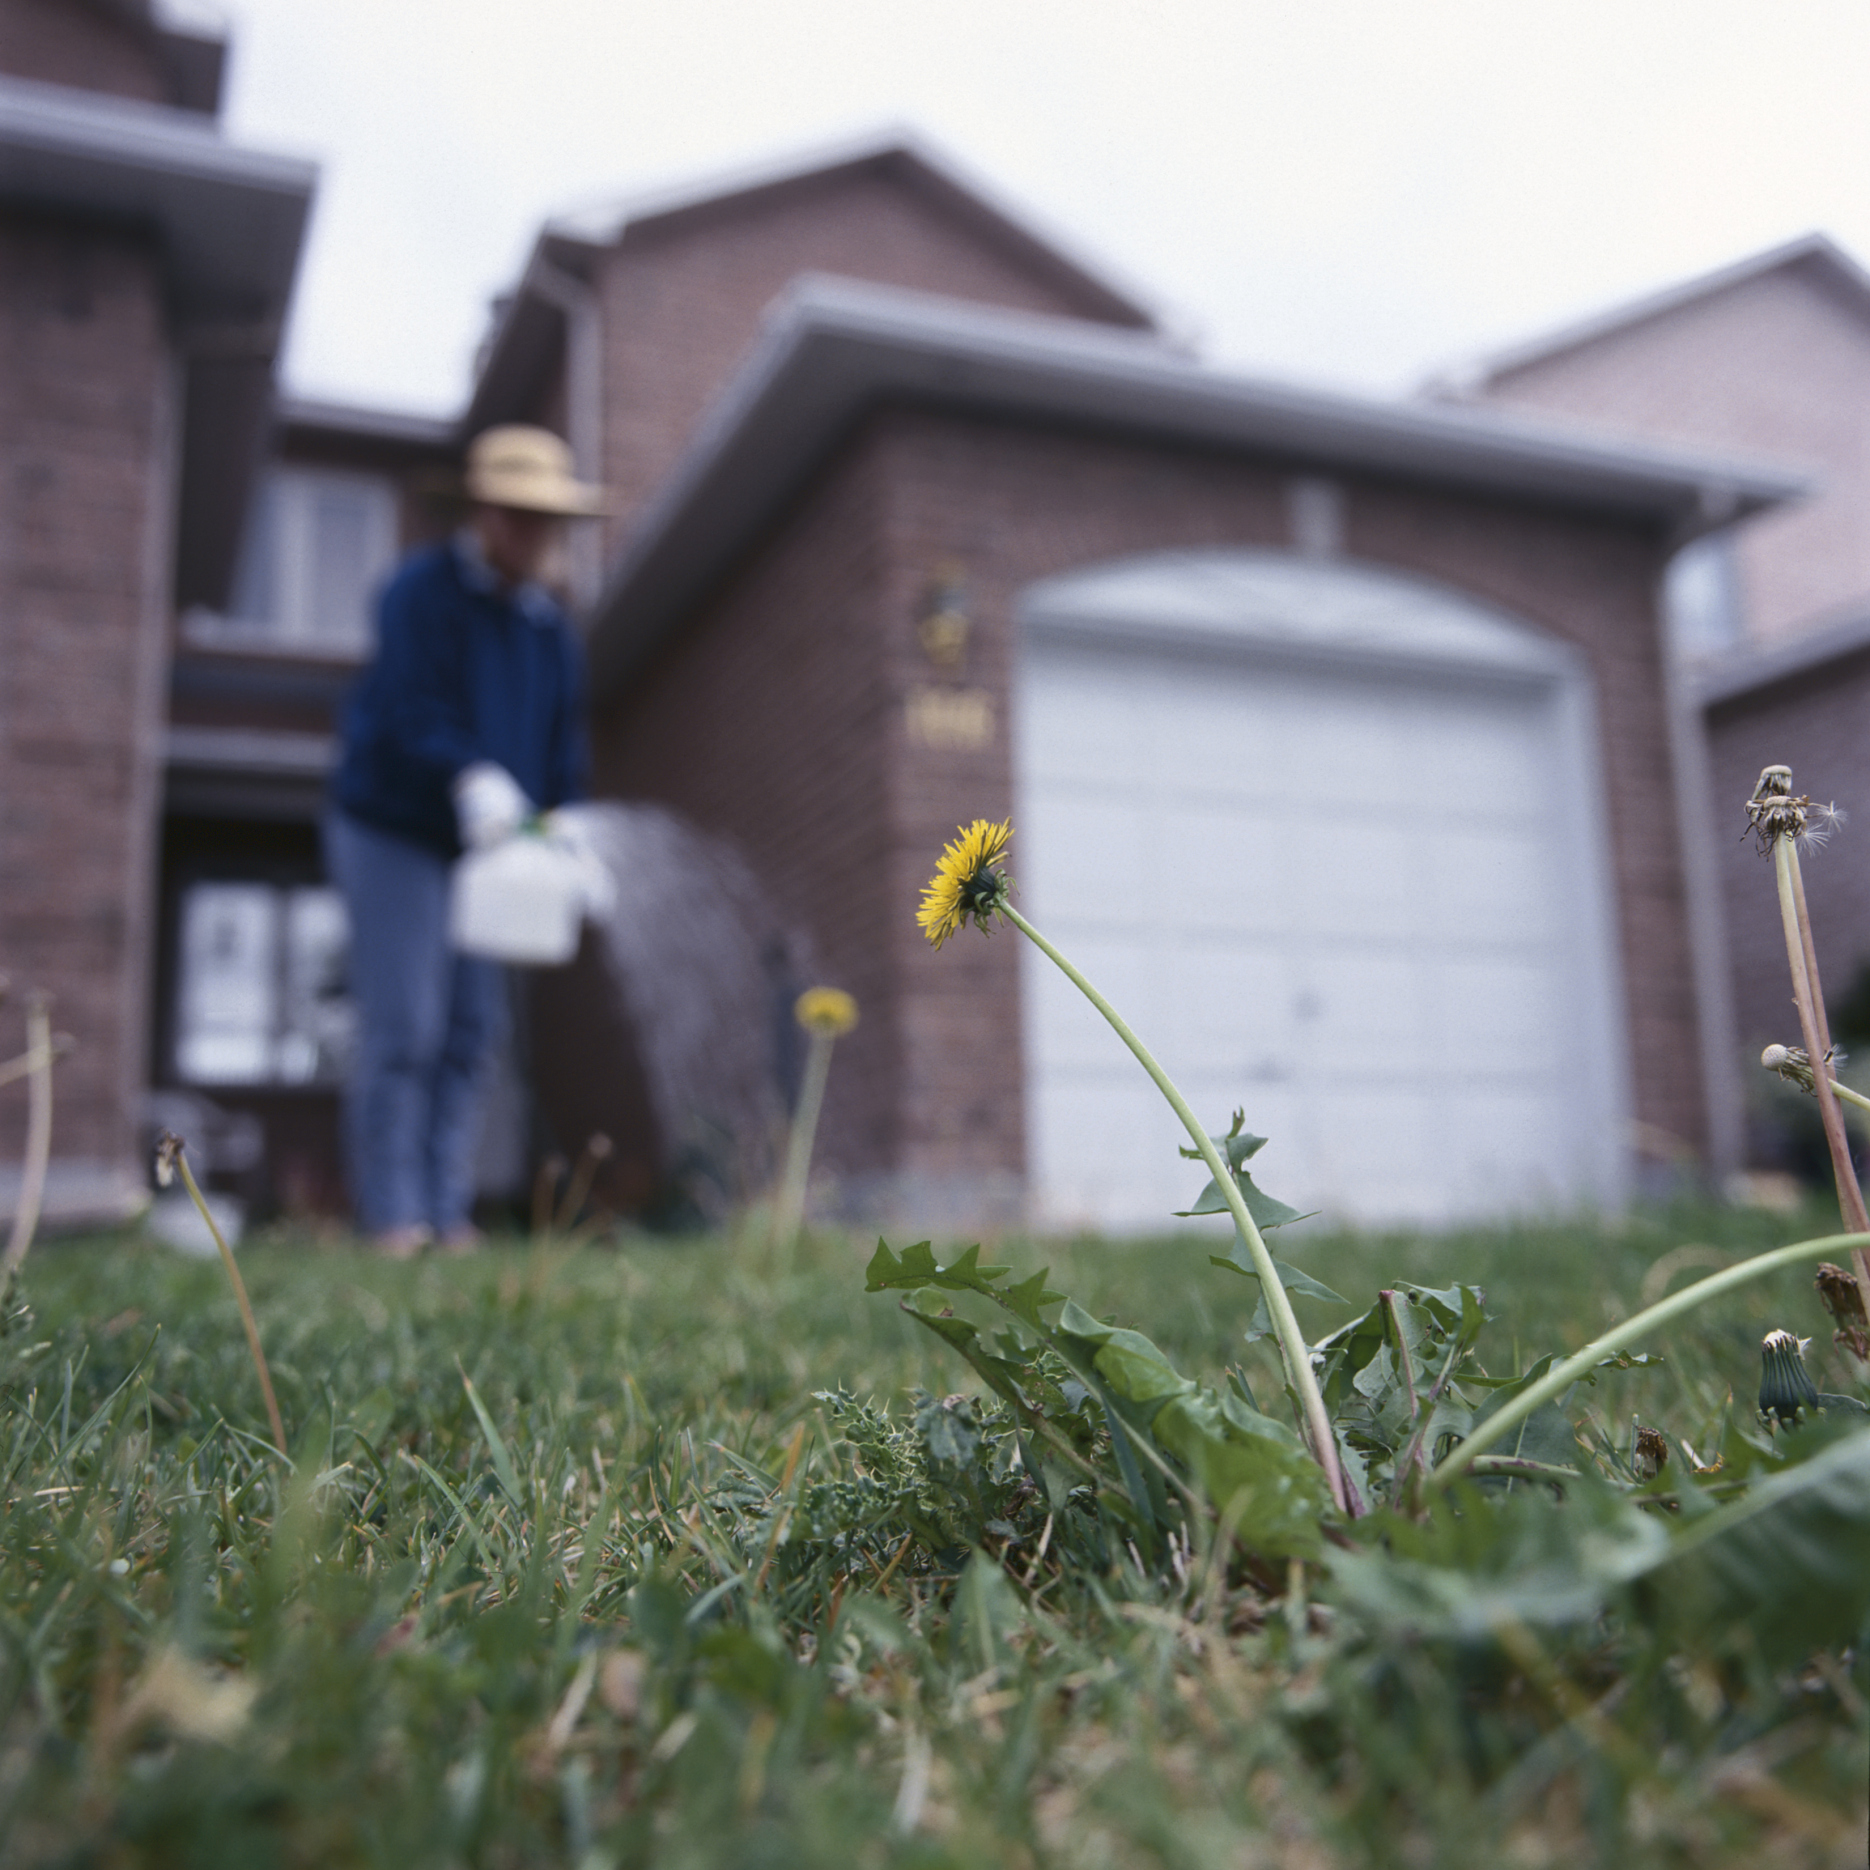 How Long Does It Take for Salt to Kill a Weed? | Home Guides